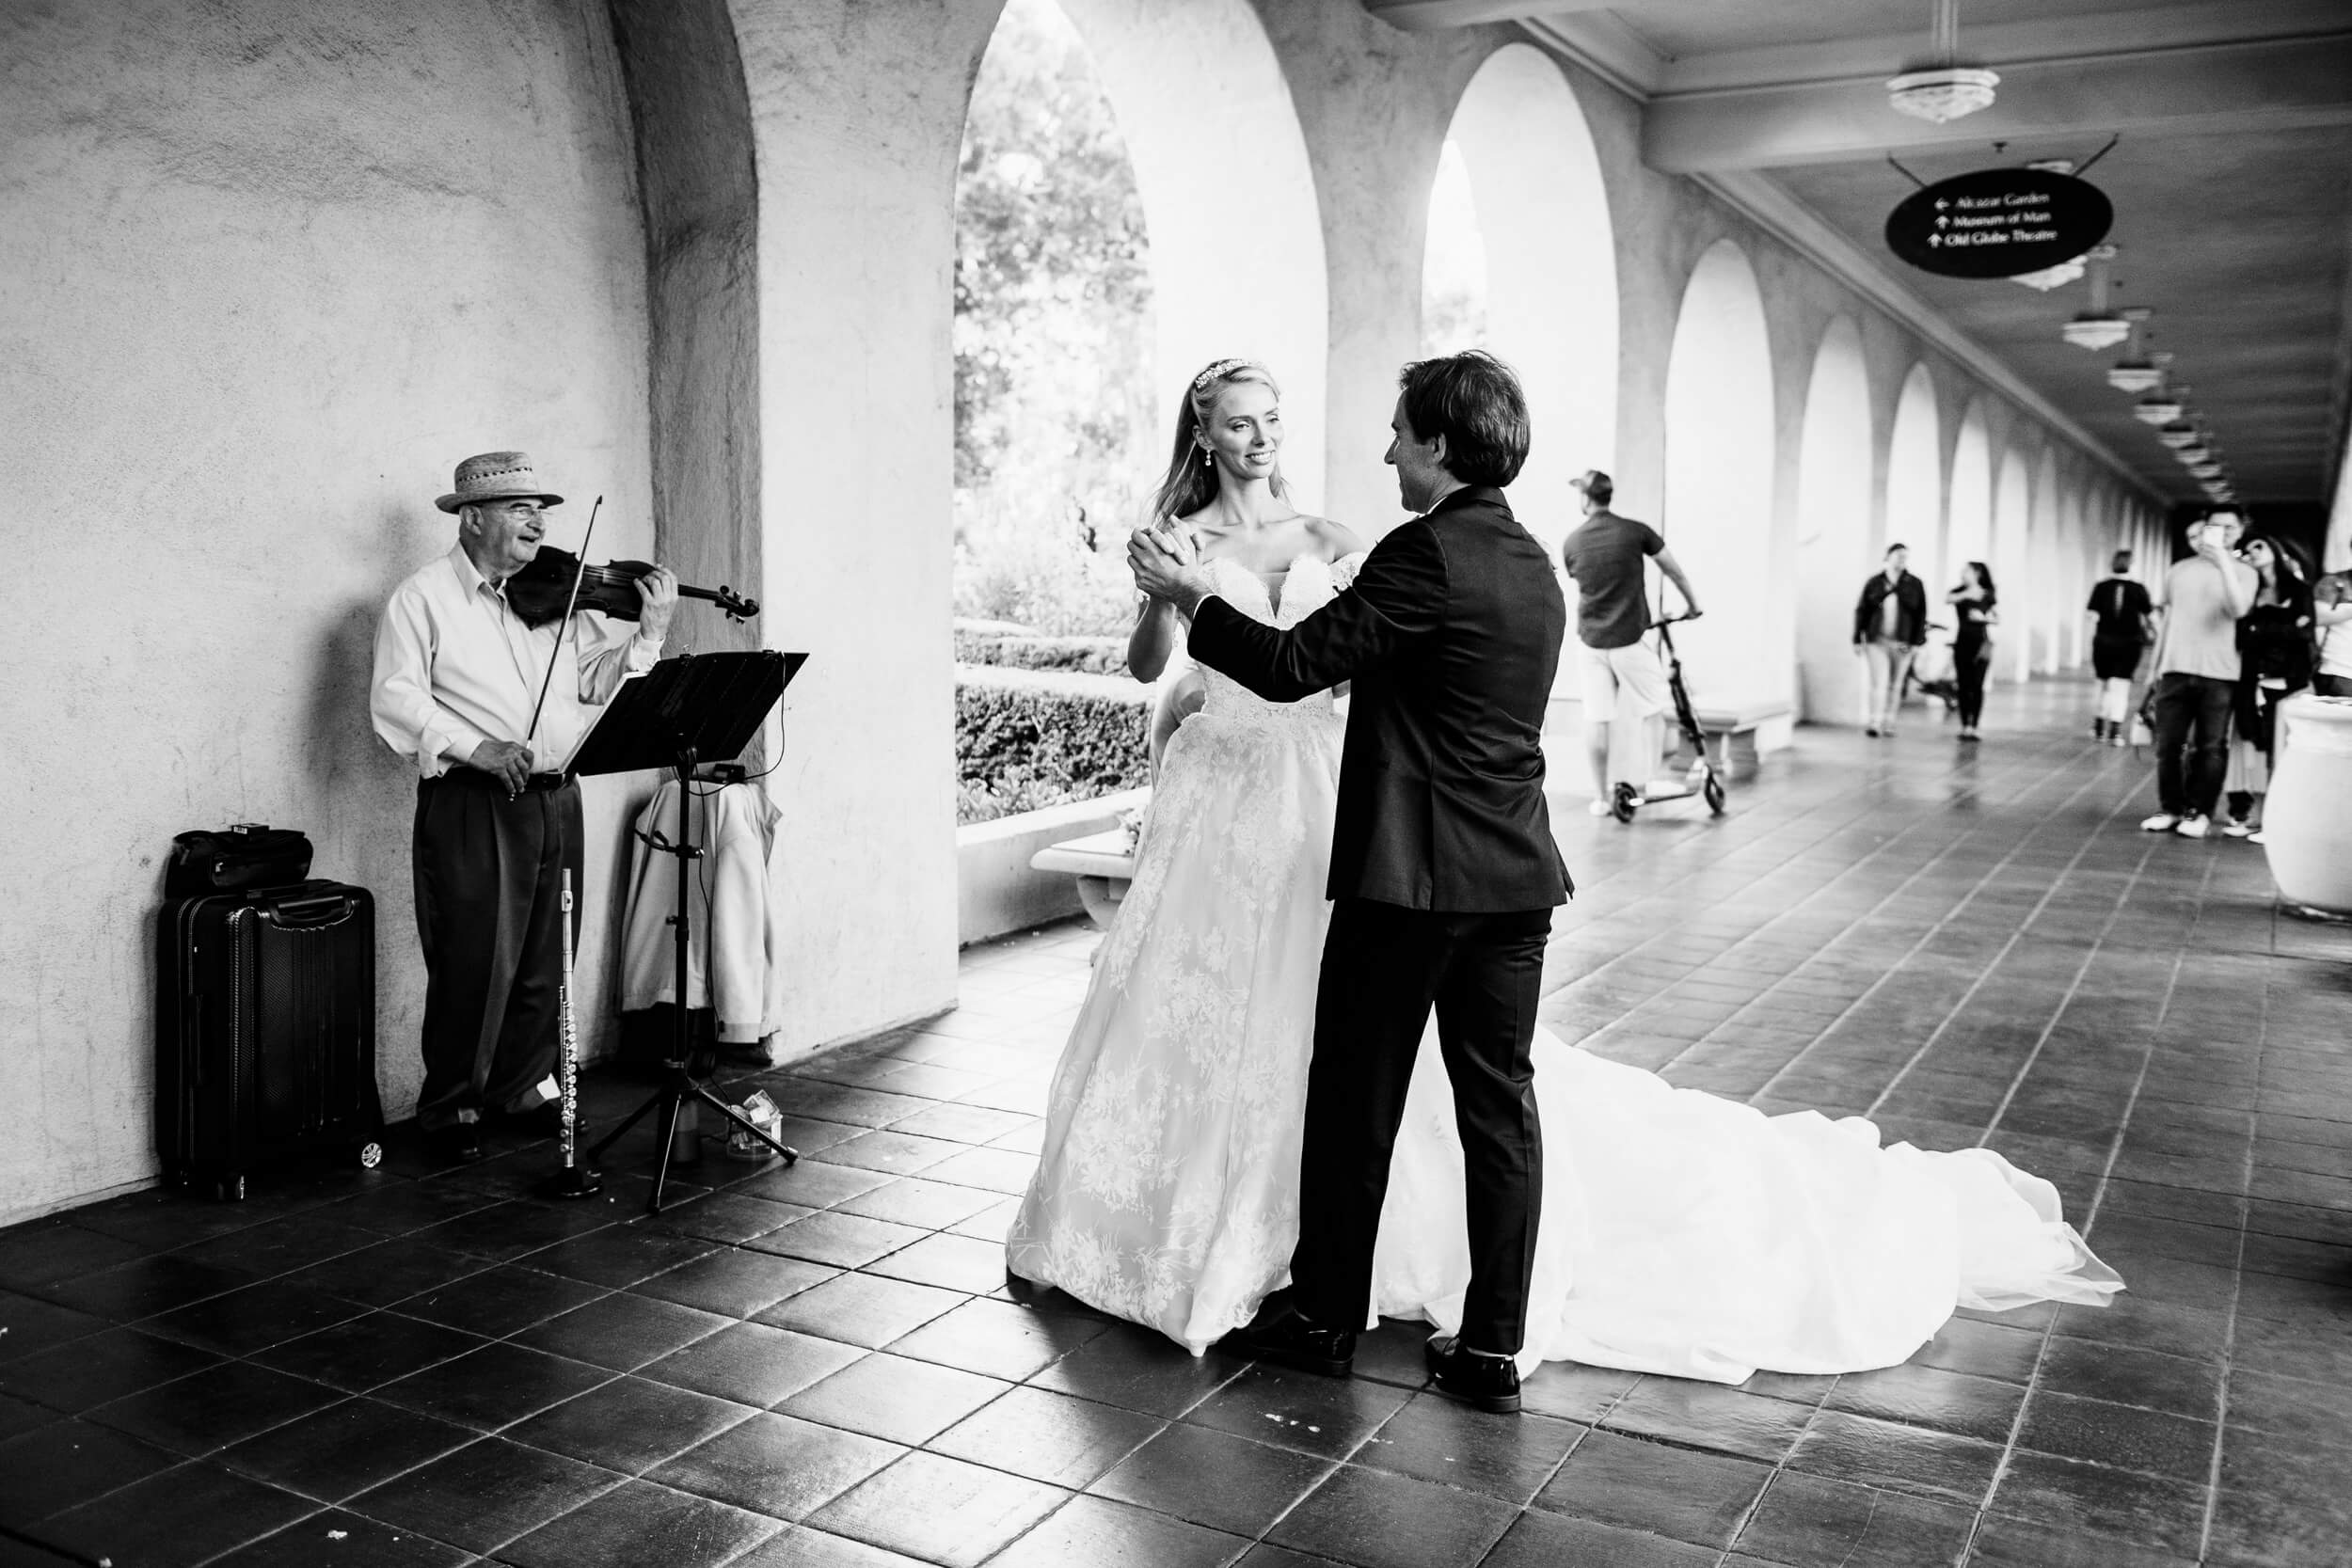 bride and groom dance while street musician performs balboa park